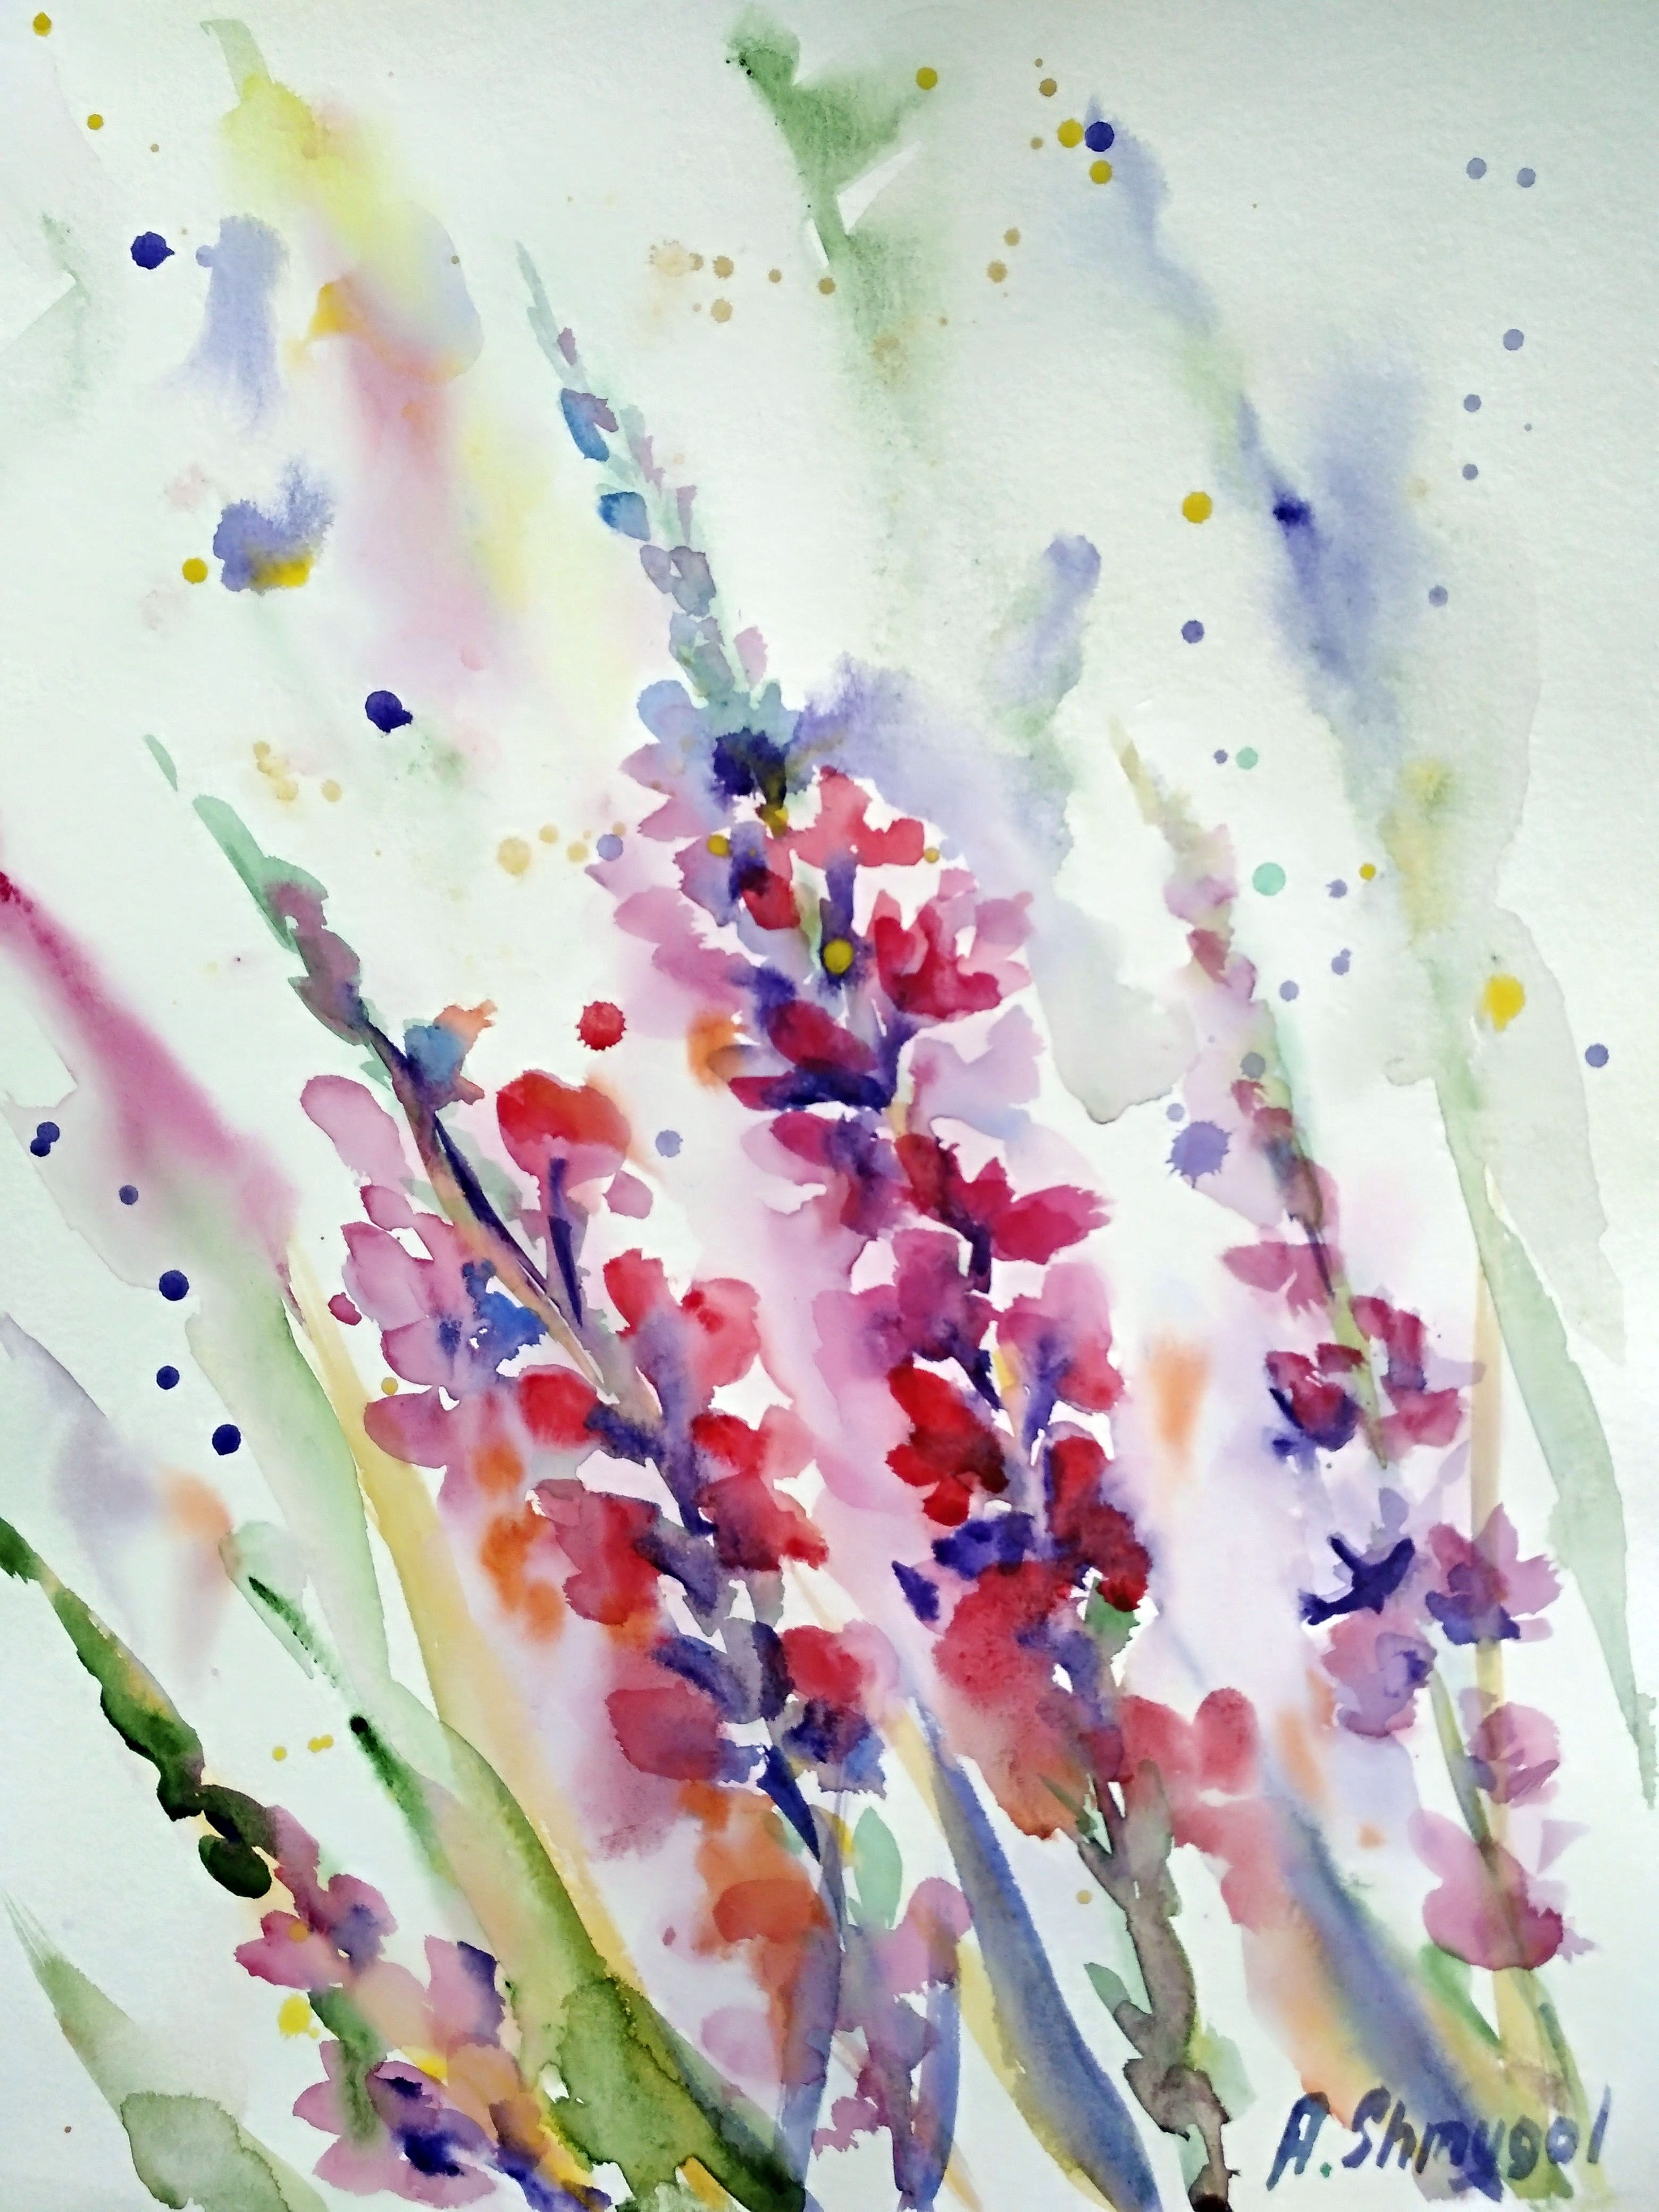 Watercolor Flowers Field Grass Field Herbs Watercolor Painting